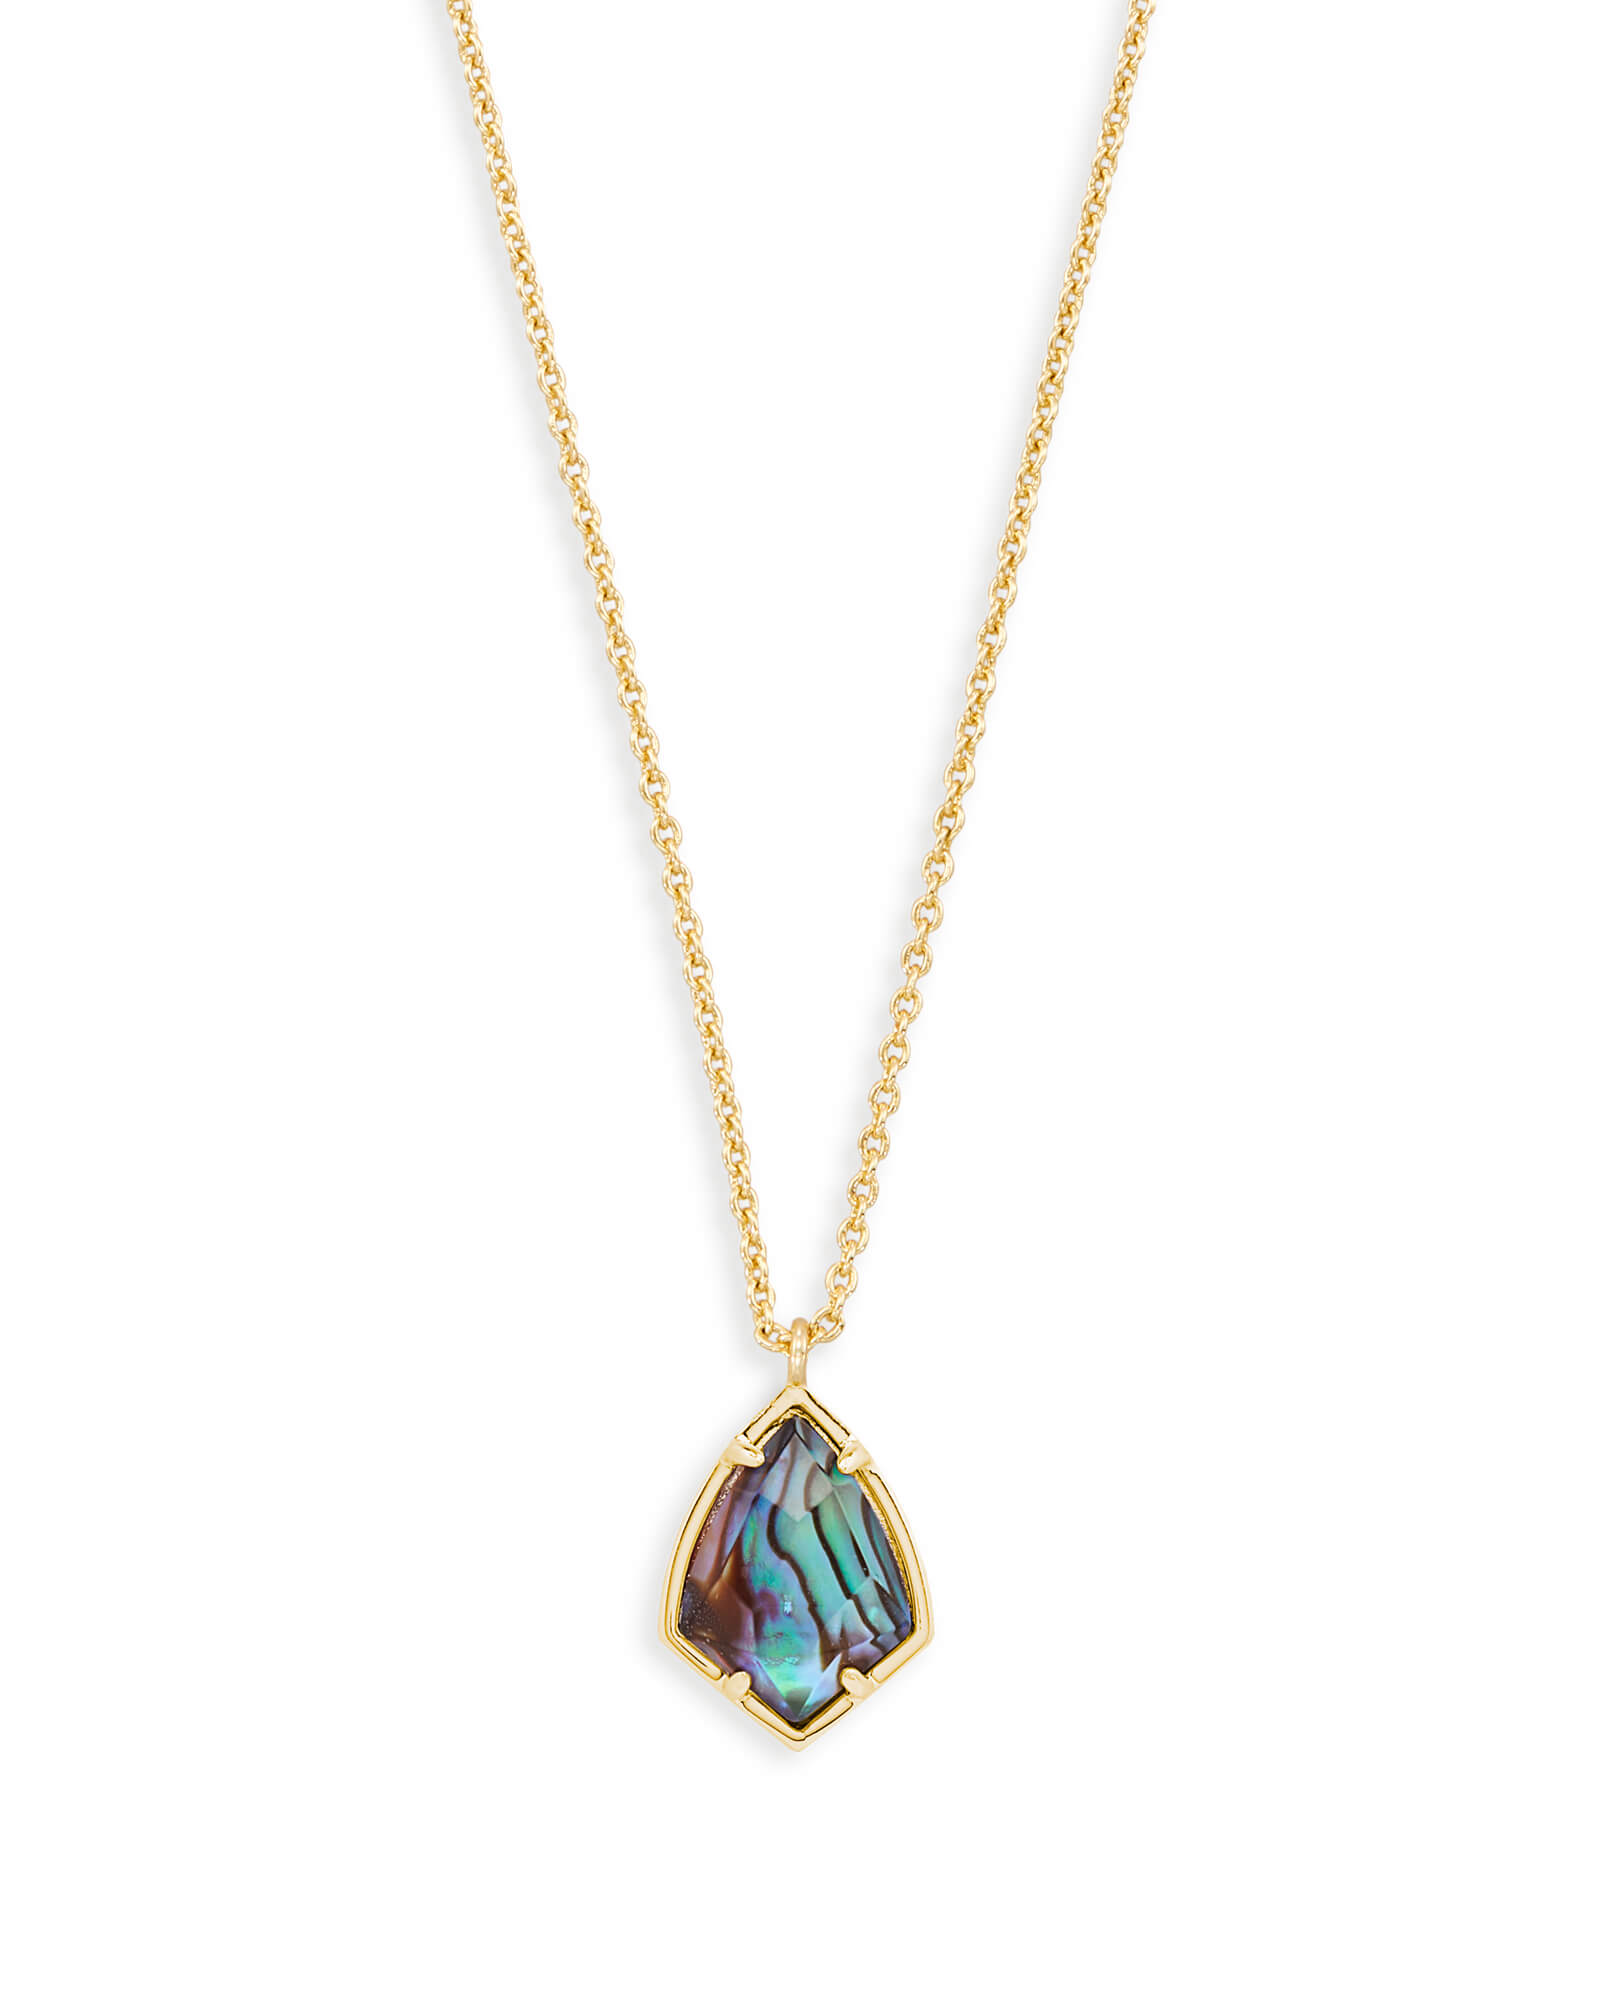 Cory Gold Pendant Necklace in Abalone Shell